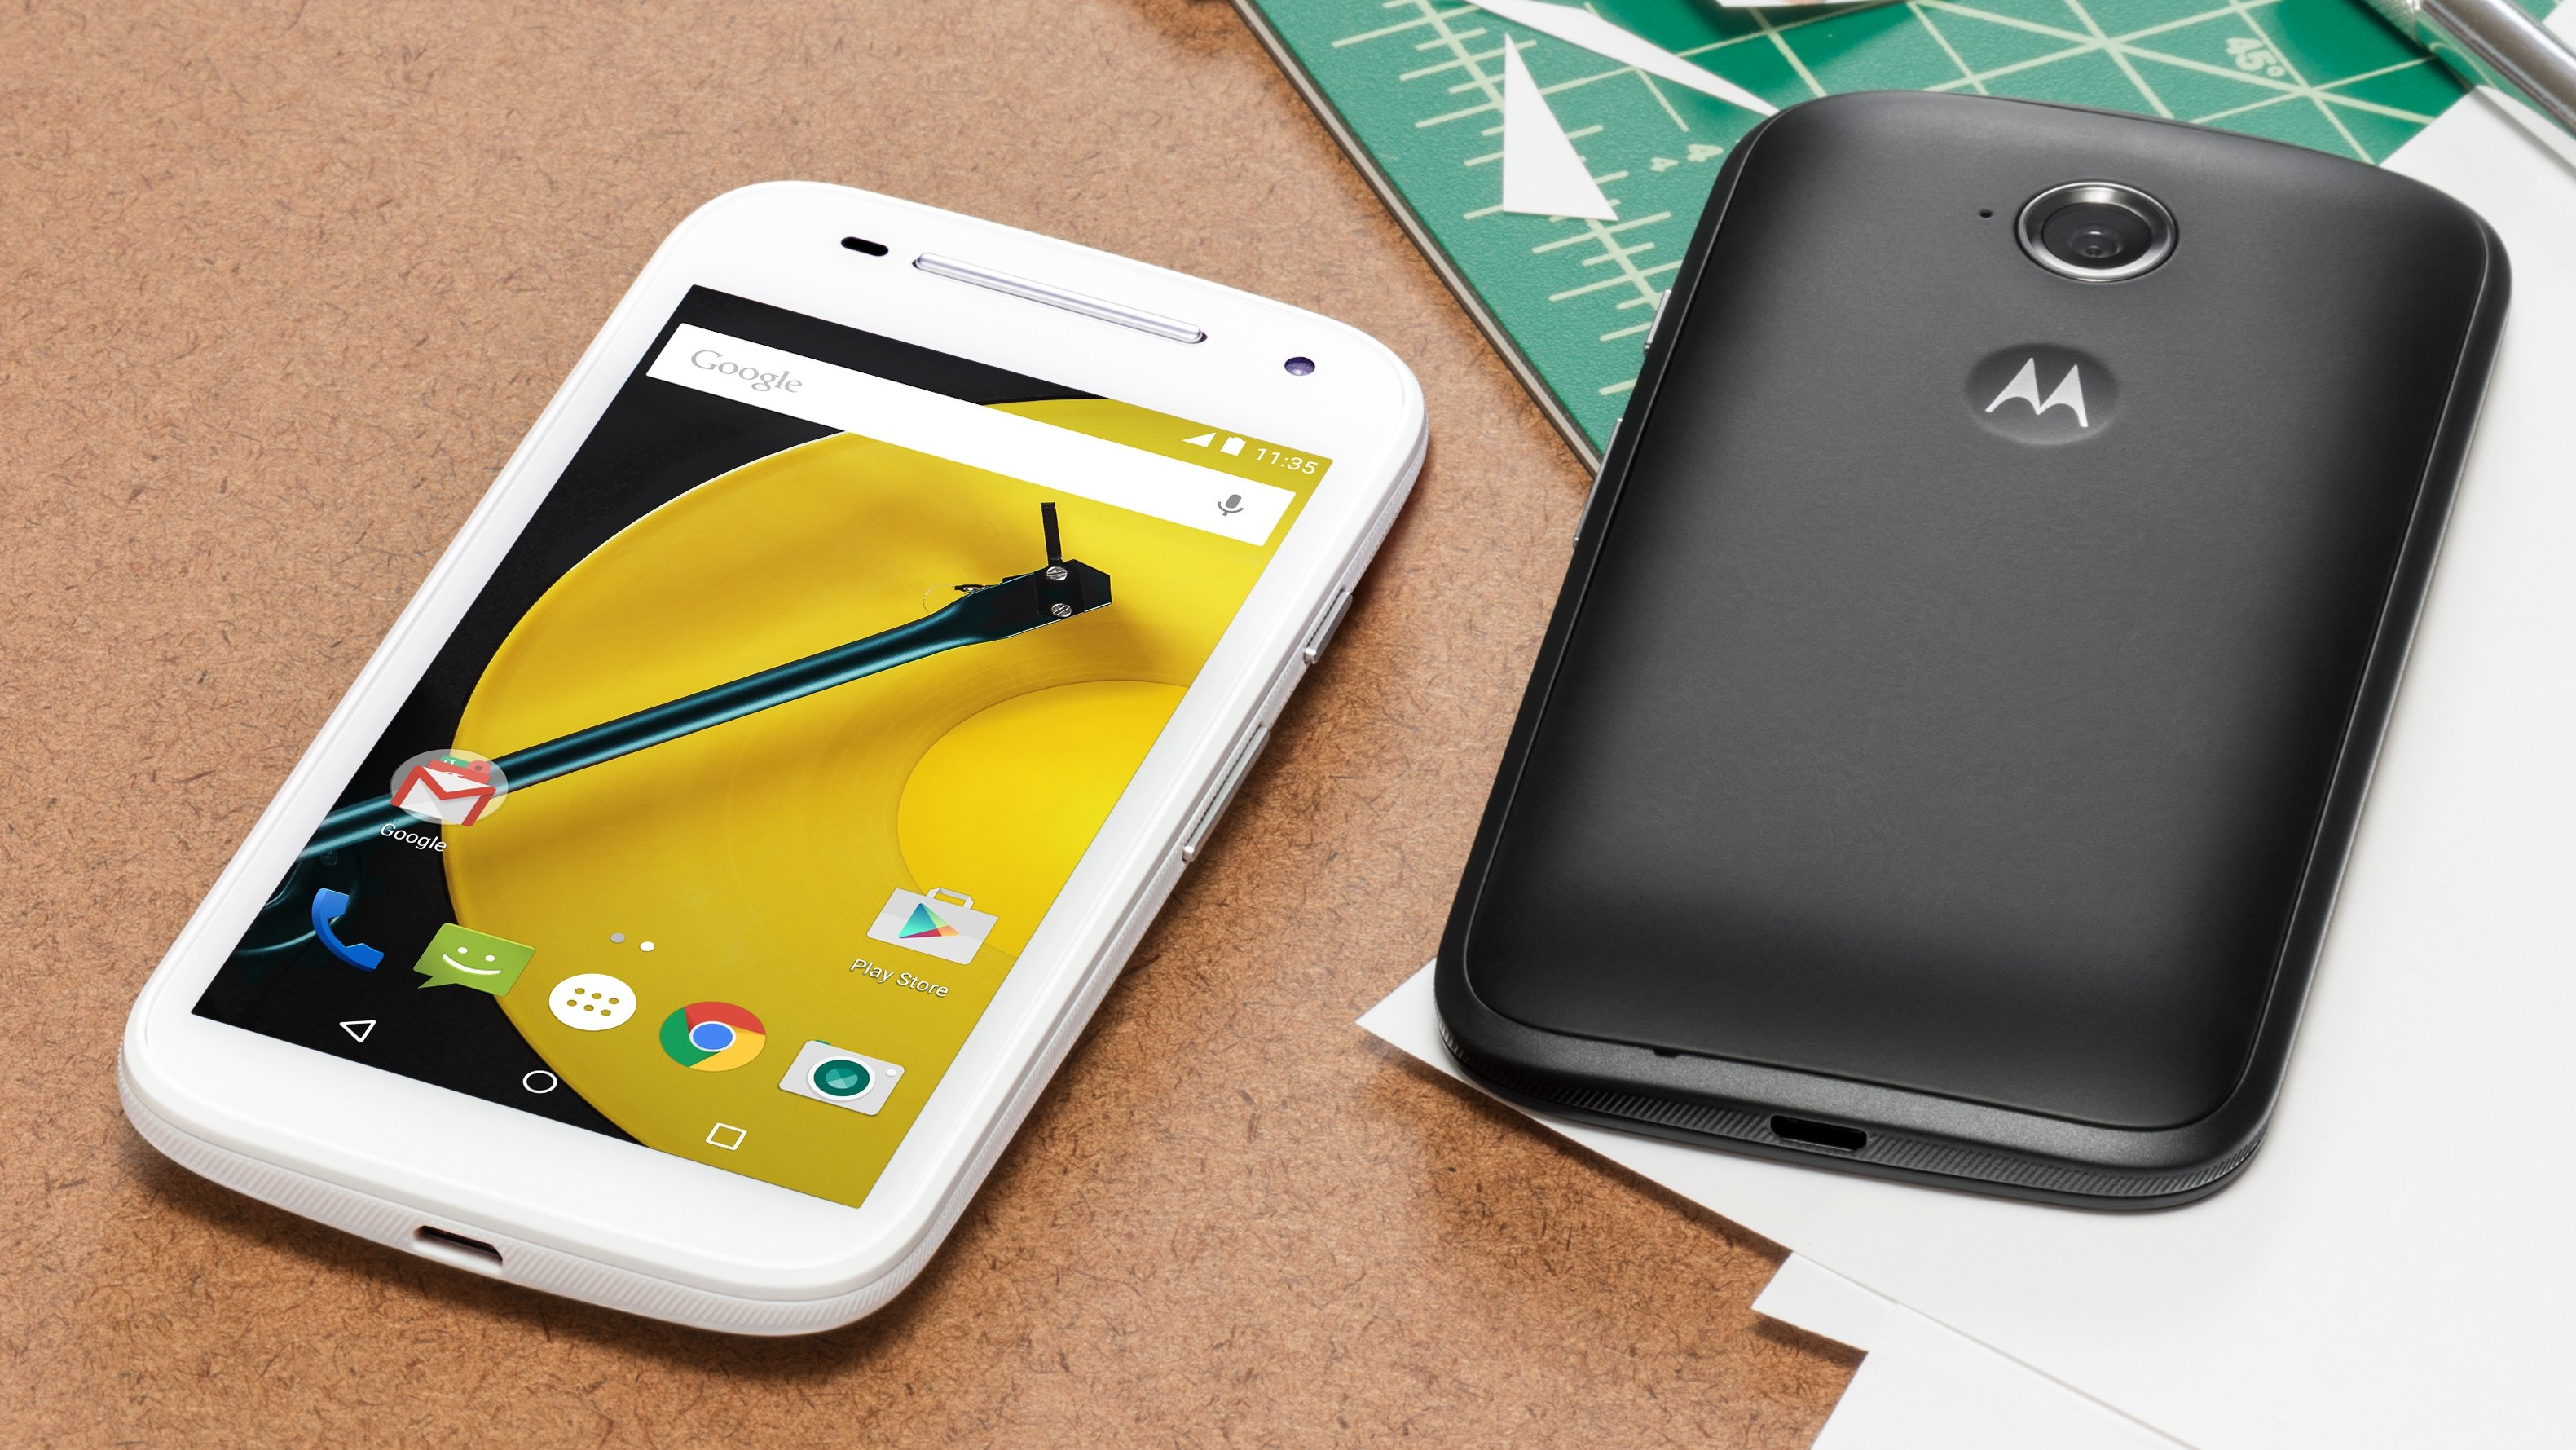 motorola phones 2016 price. motorola moto e 2nd gen review: great value and performance at a budget | expert reviews phones 2016 price